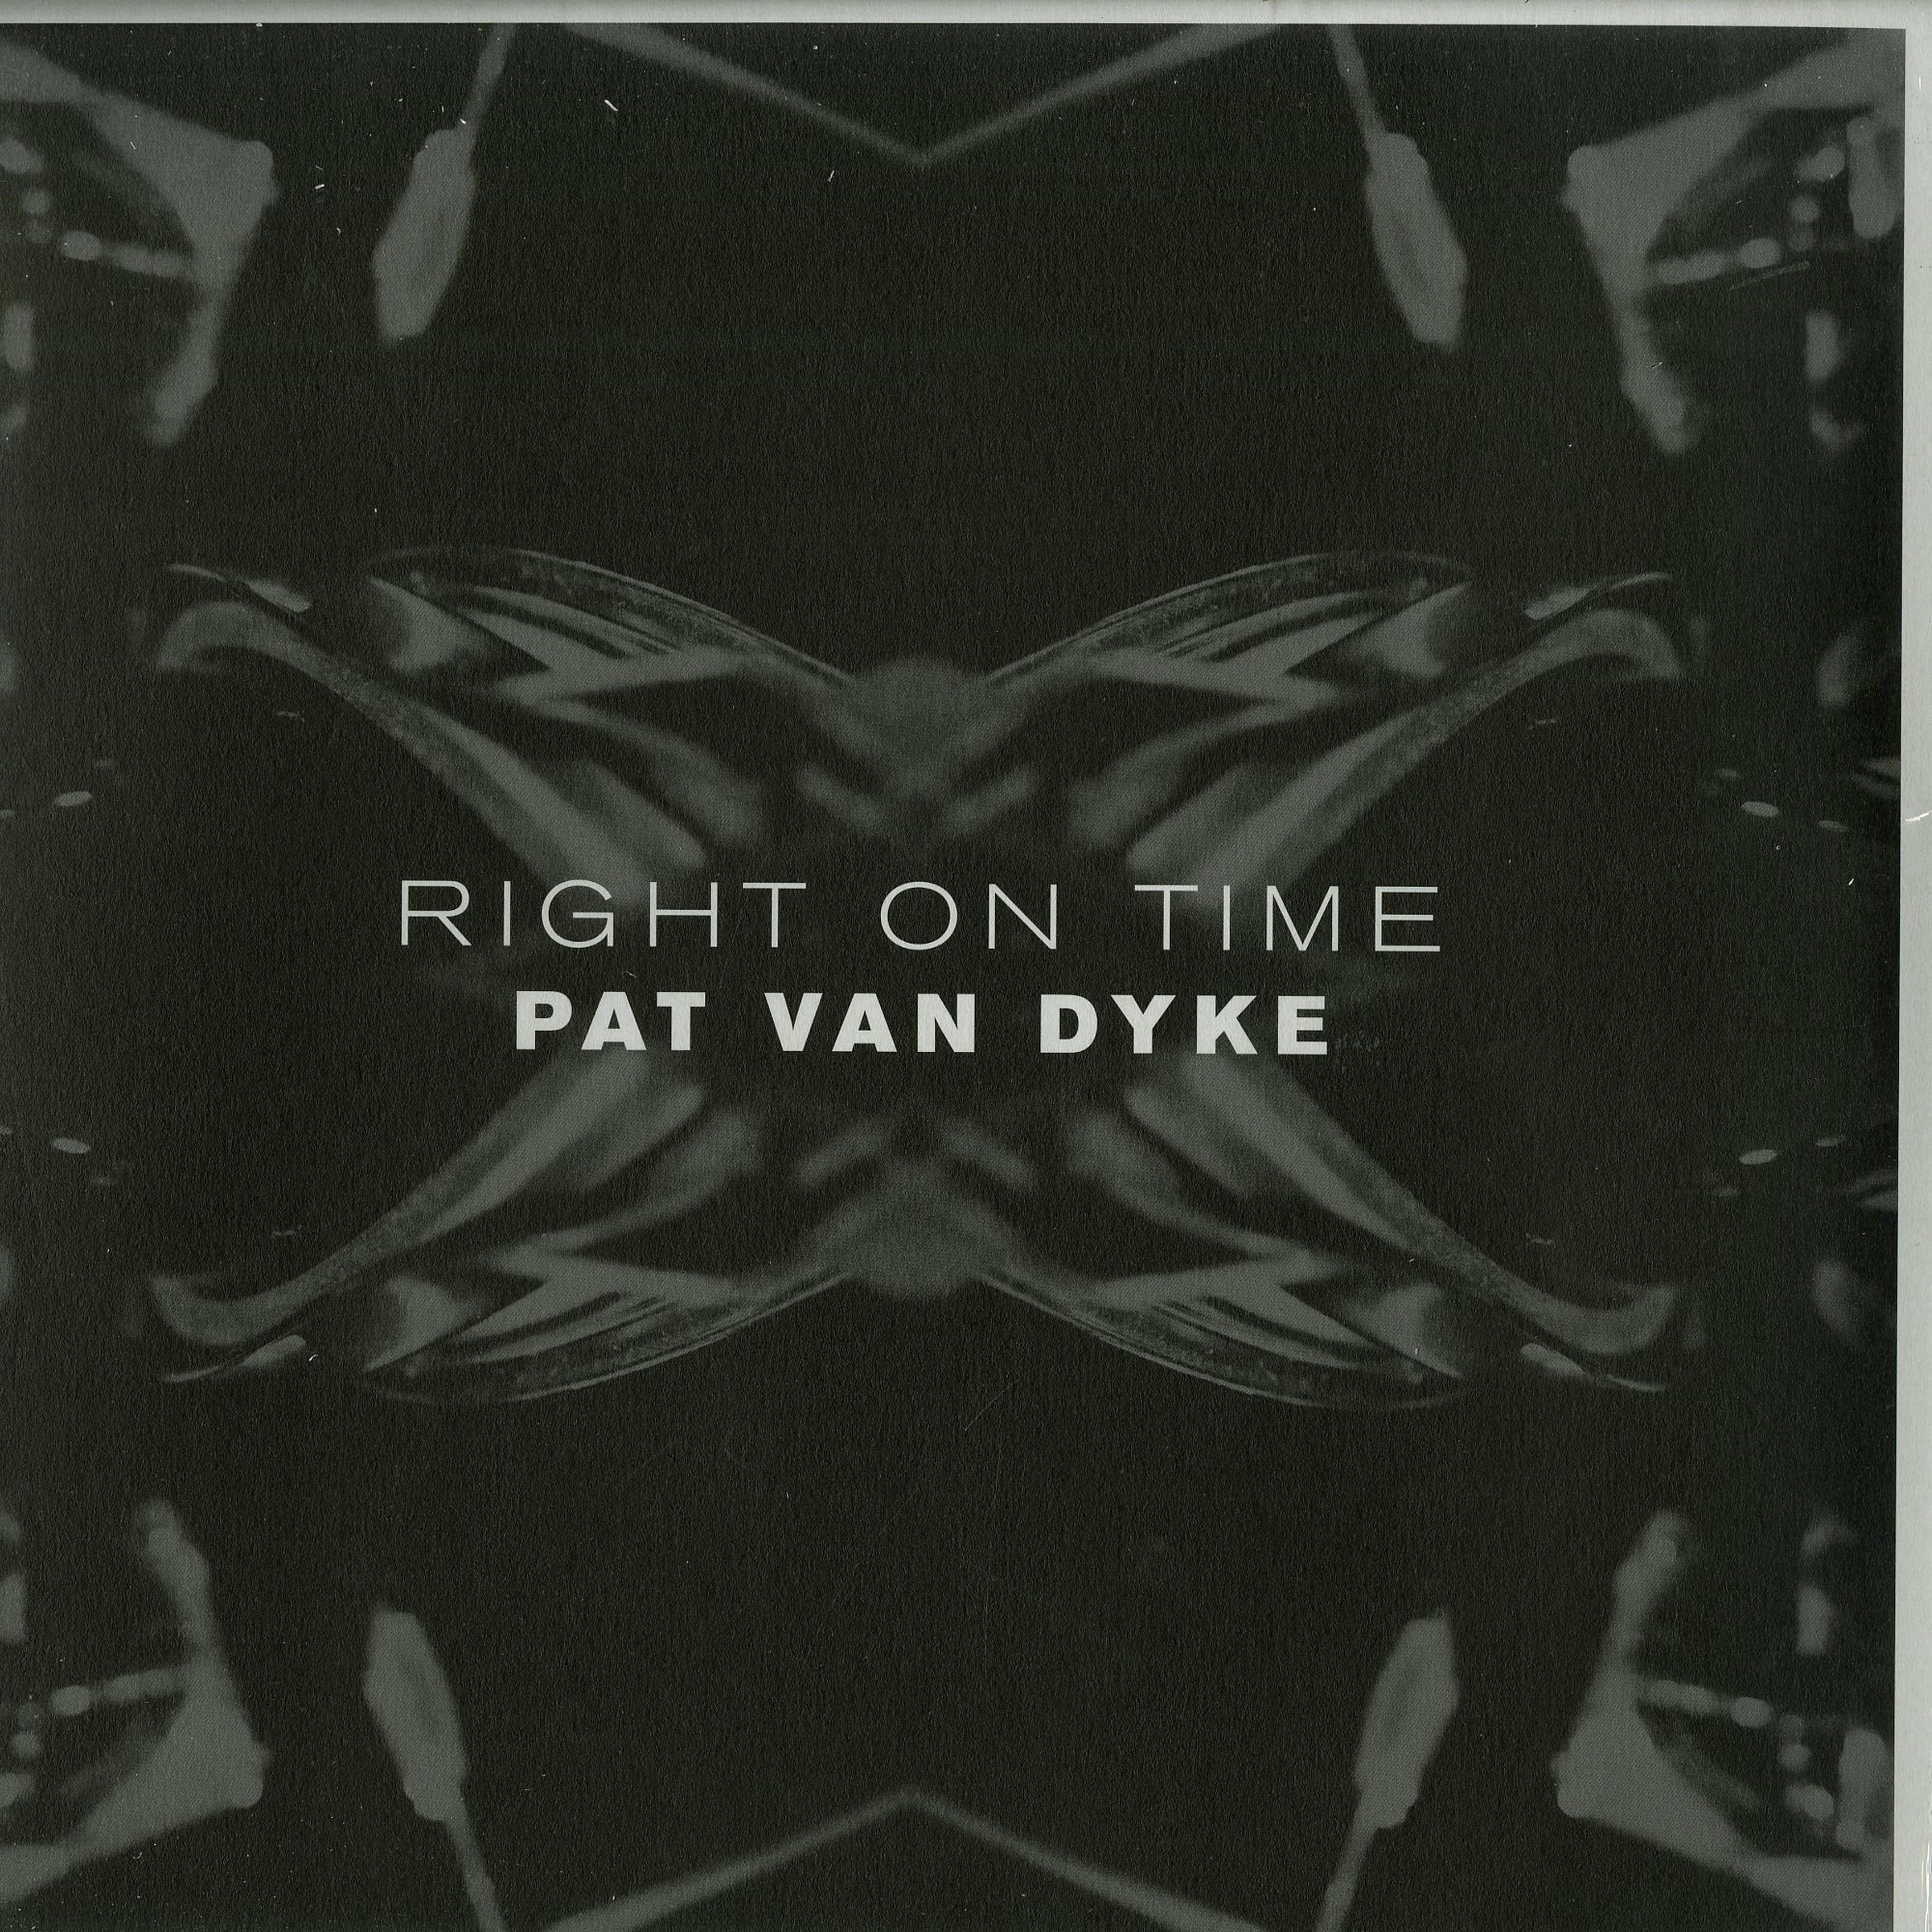 Pat van Dyke - RIGHT ON TIME